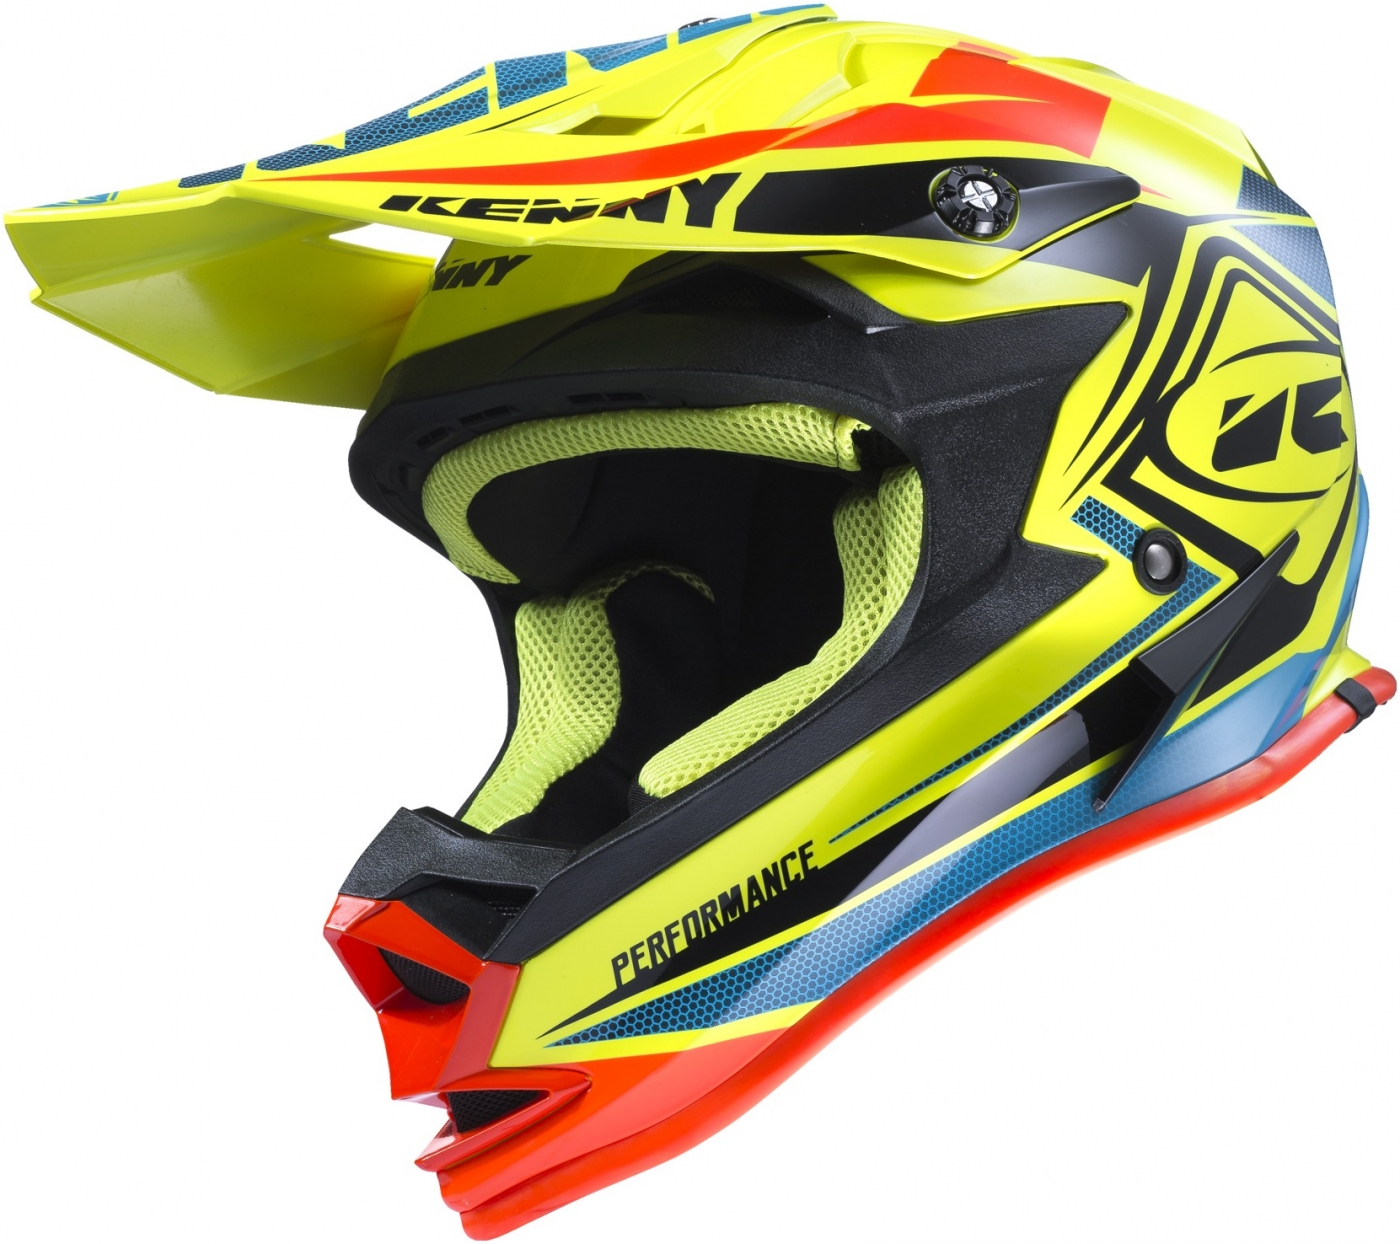 KENNY prilba PERFORMANCE 17 neon yellow/blue/orange